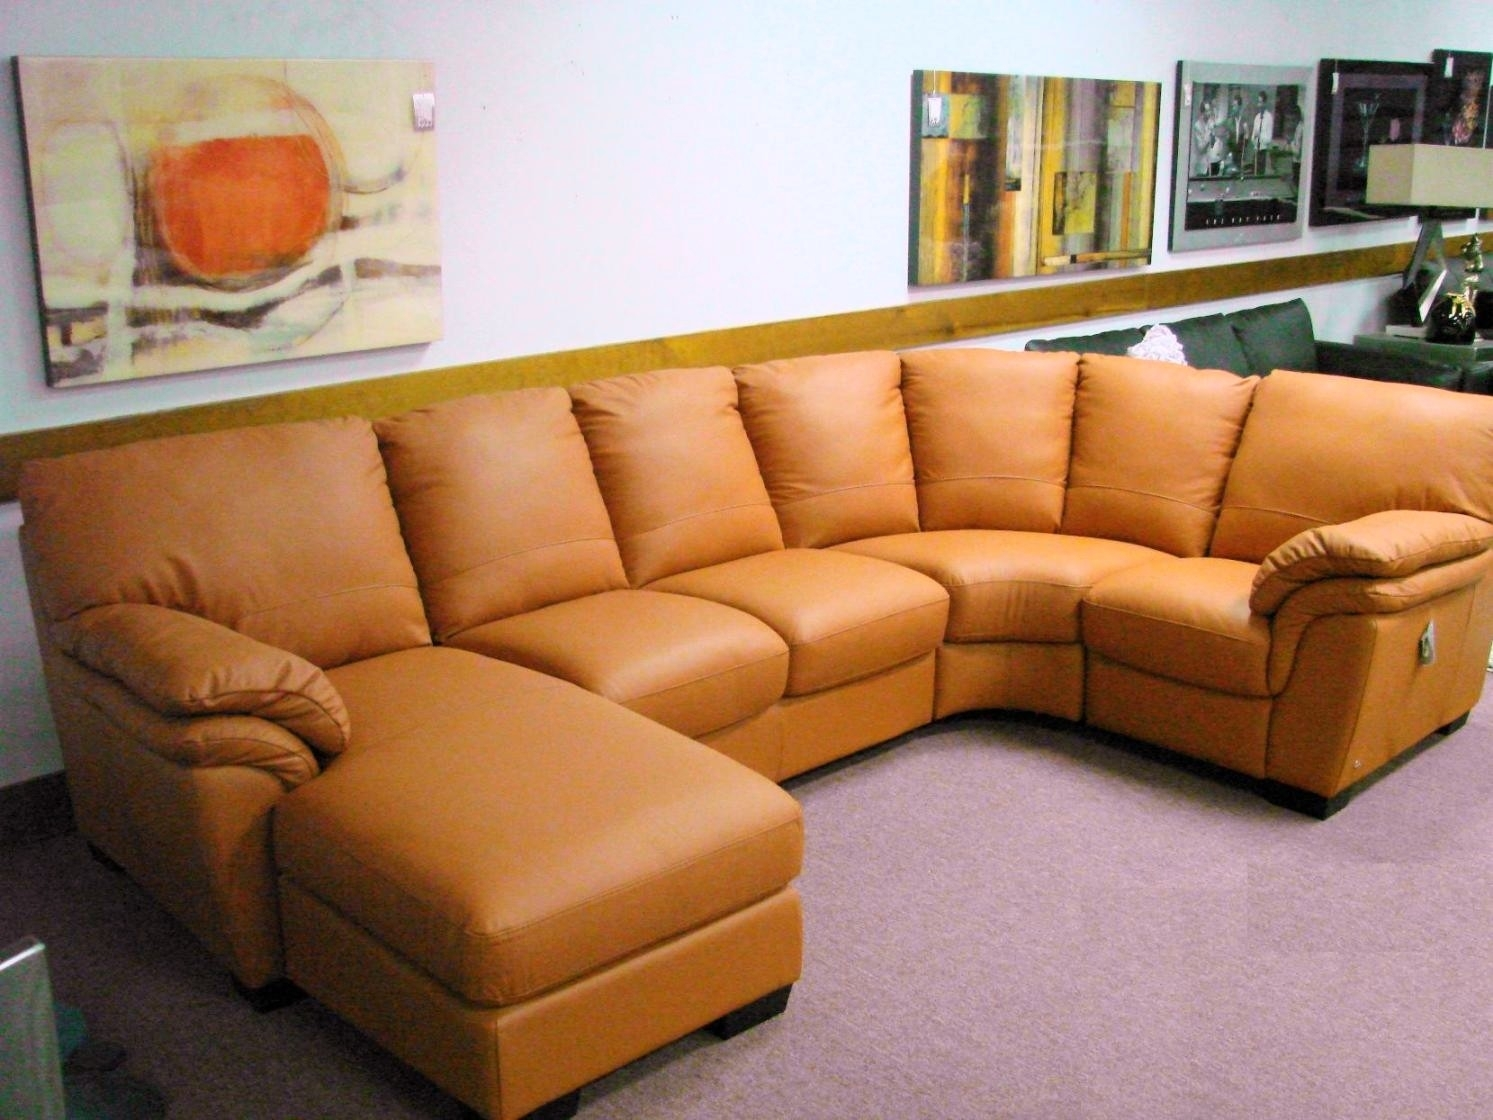 Sofa : Caramel Colored Leather Sofa Camel Color Sectional Sofacarmel Pertaining To Camel Colored Sectional Sofas (View 7 of 10)